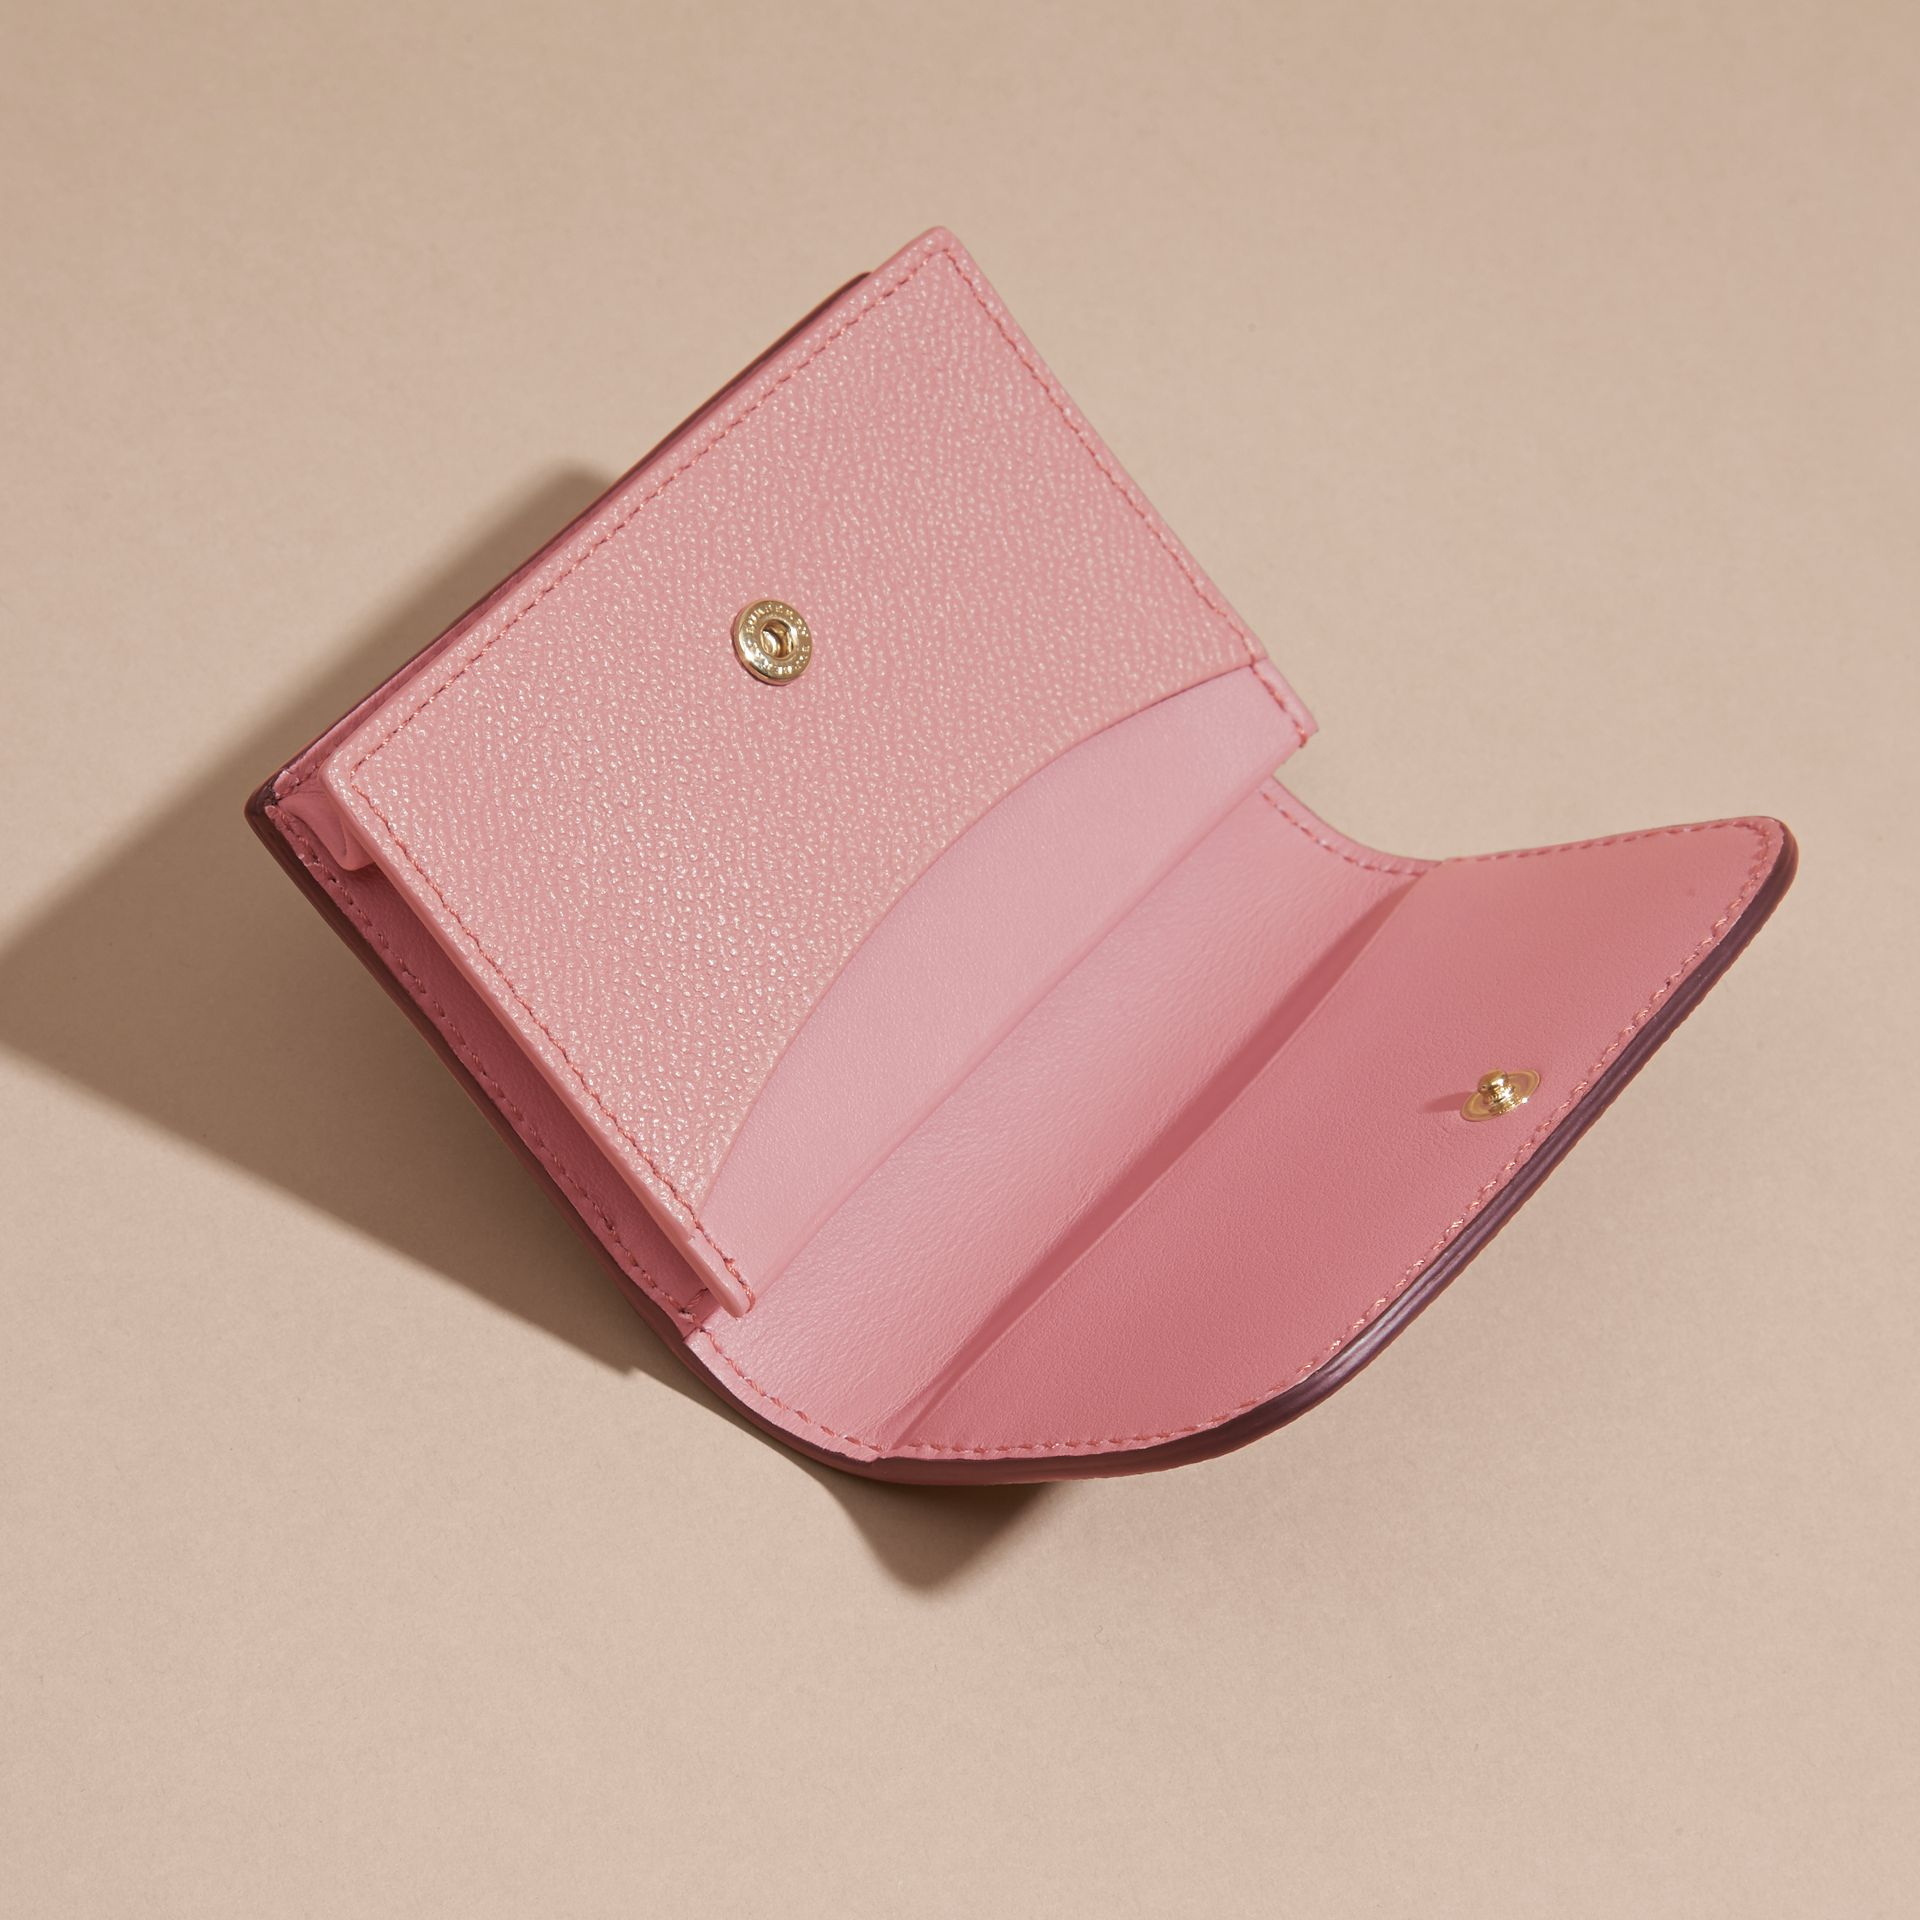 Grainy Leather Card Case in Dusty Pink - Women | Burberry - gallery image 5